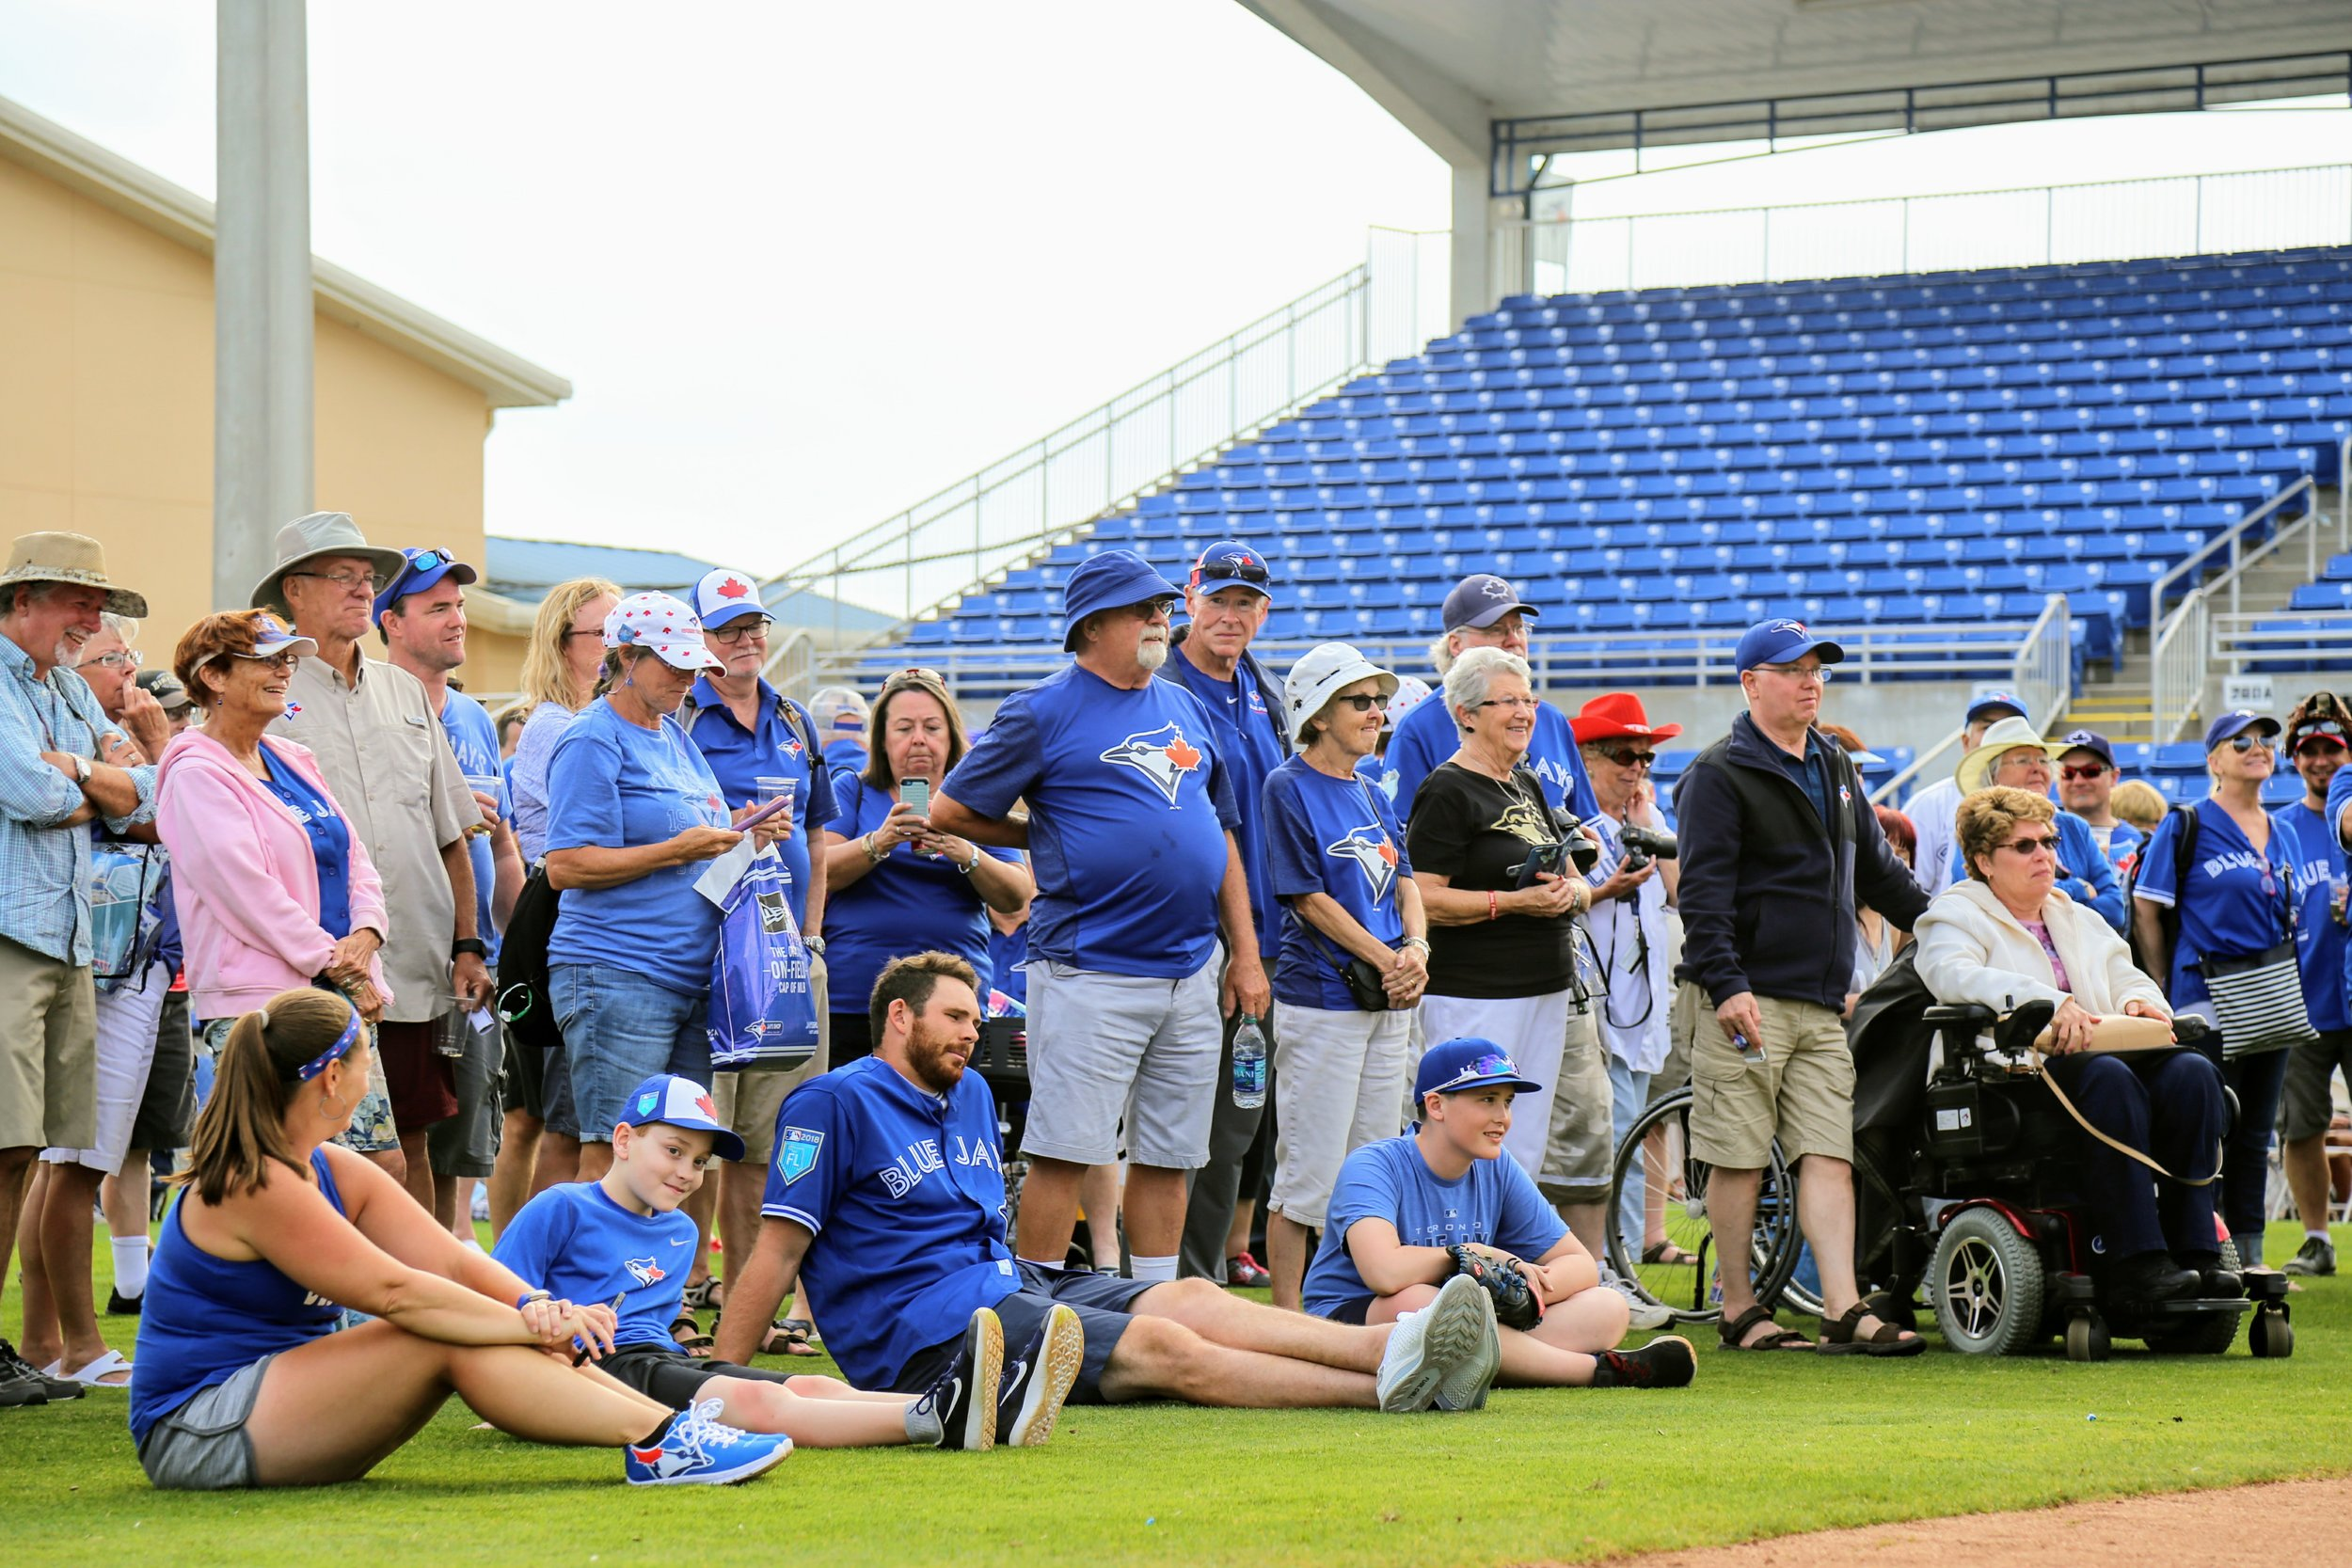 Blue Jays right-hander Joe Biagini (middle on ground) takes a seat among the club's season ticketholders at an event at Dunedin Stadium on Tuesday.